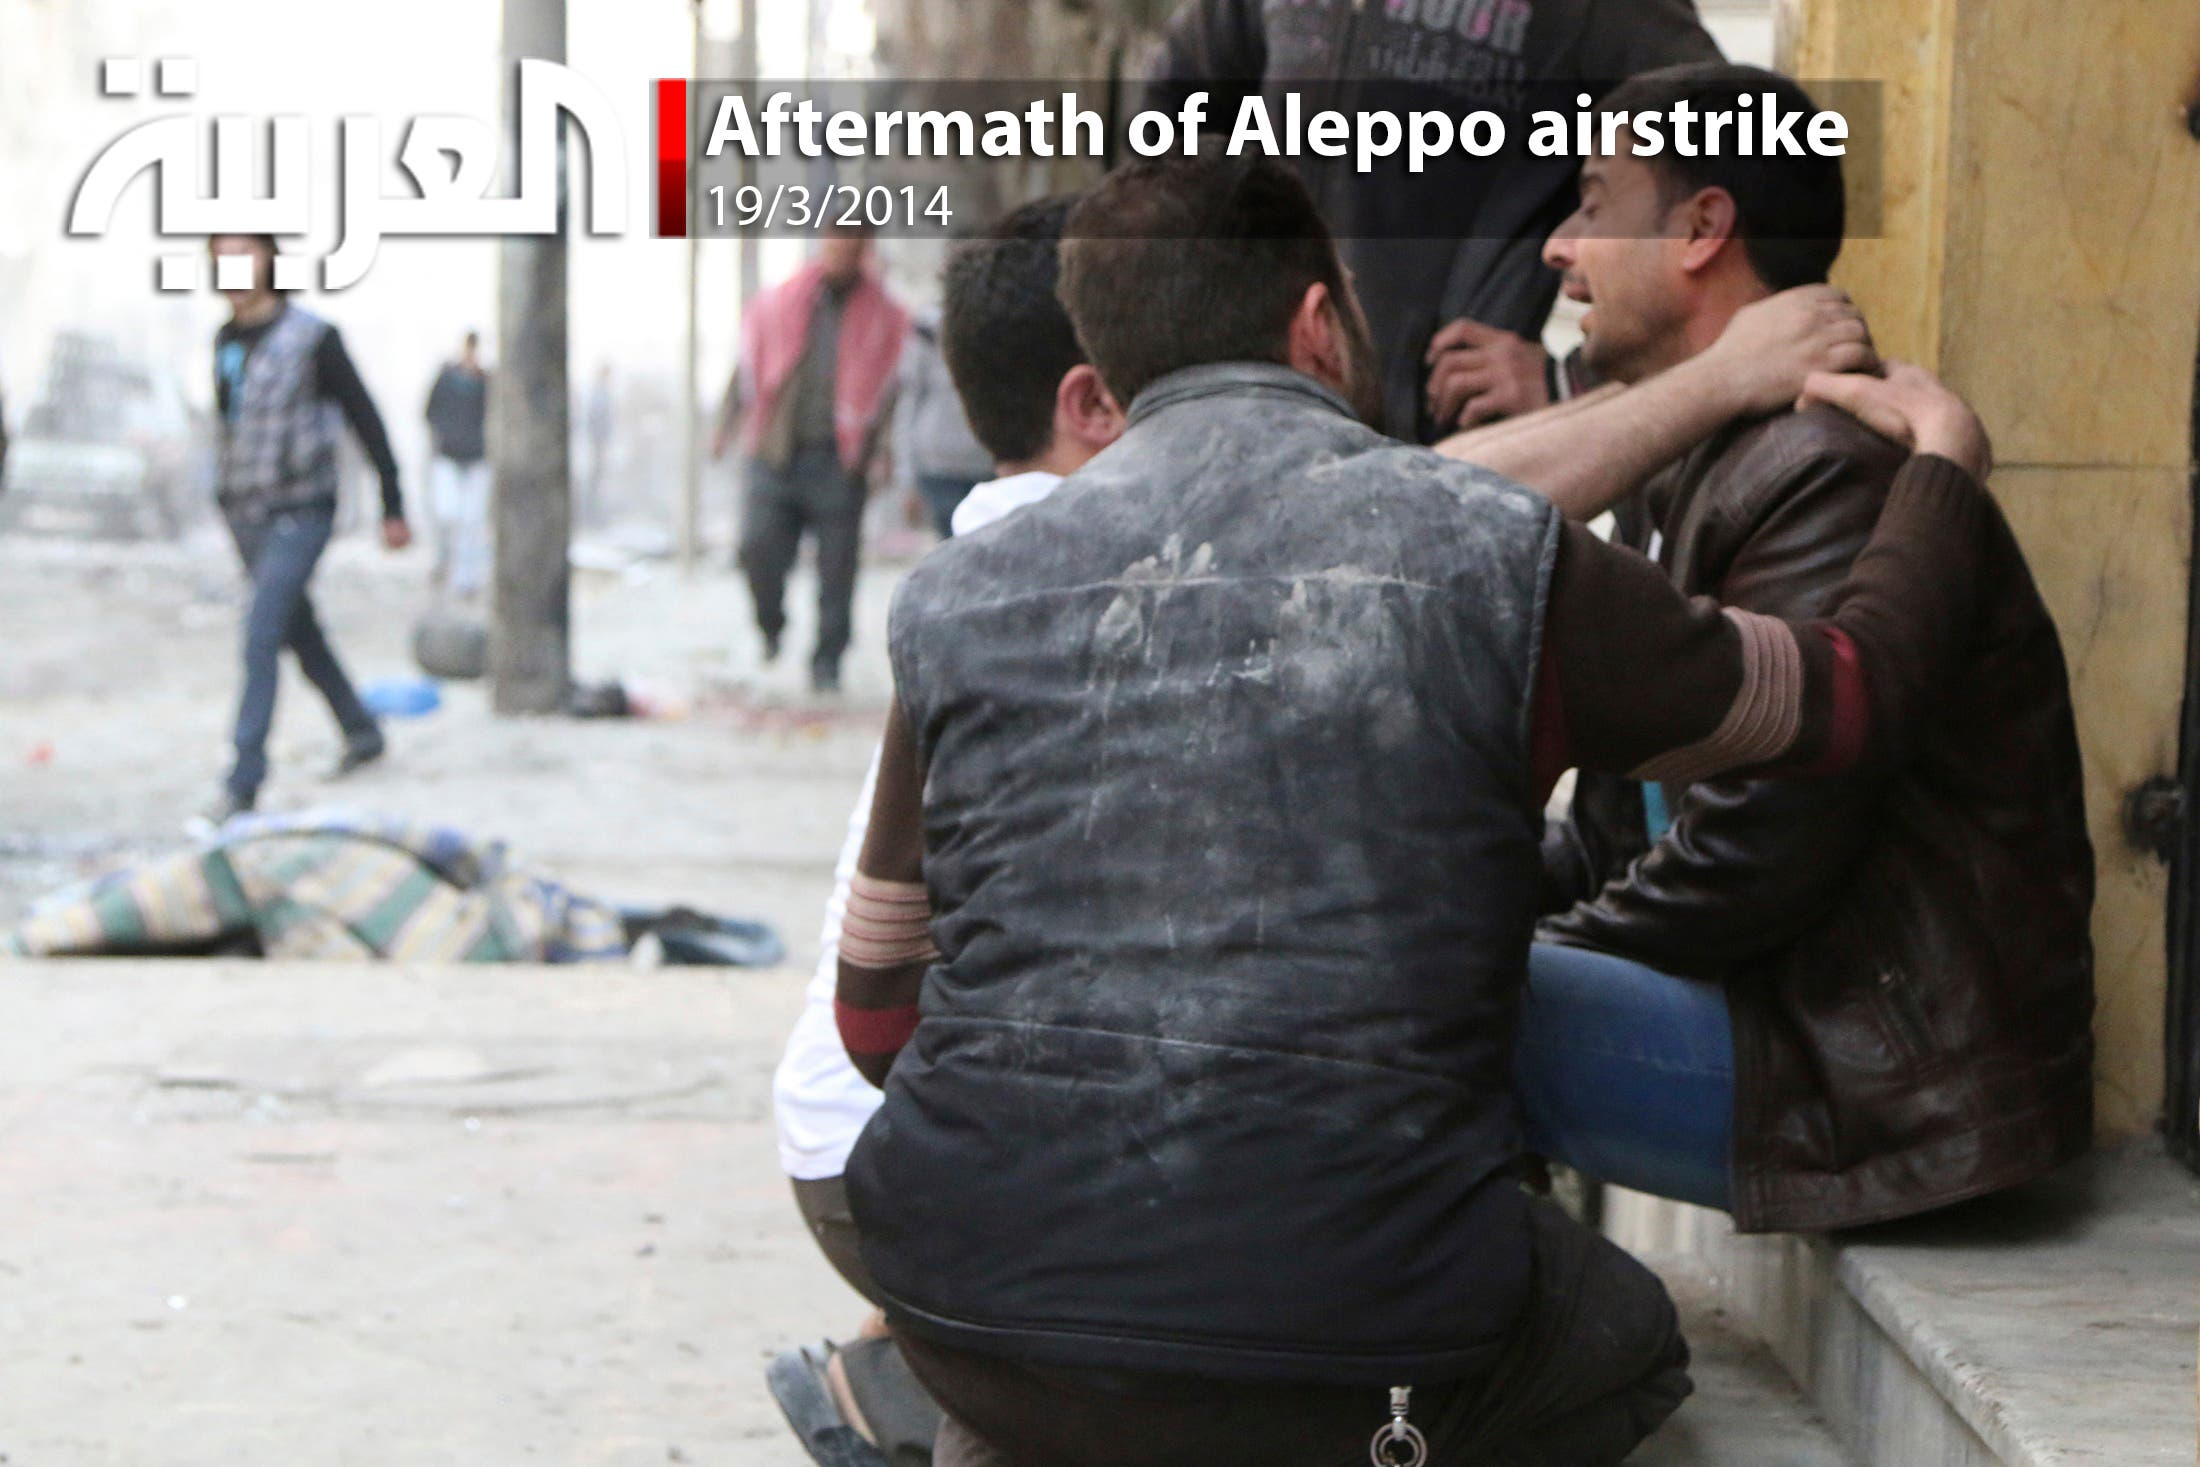 Aftermath of Aleppo airstrike